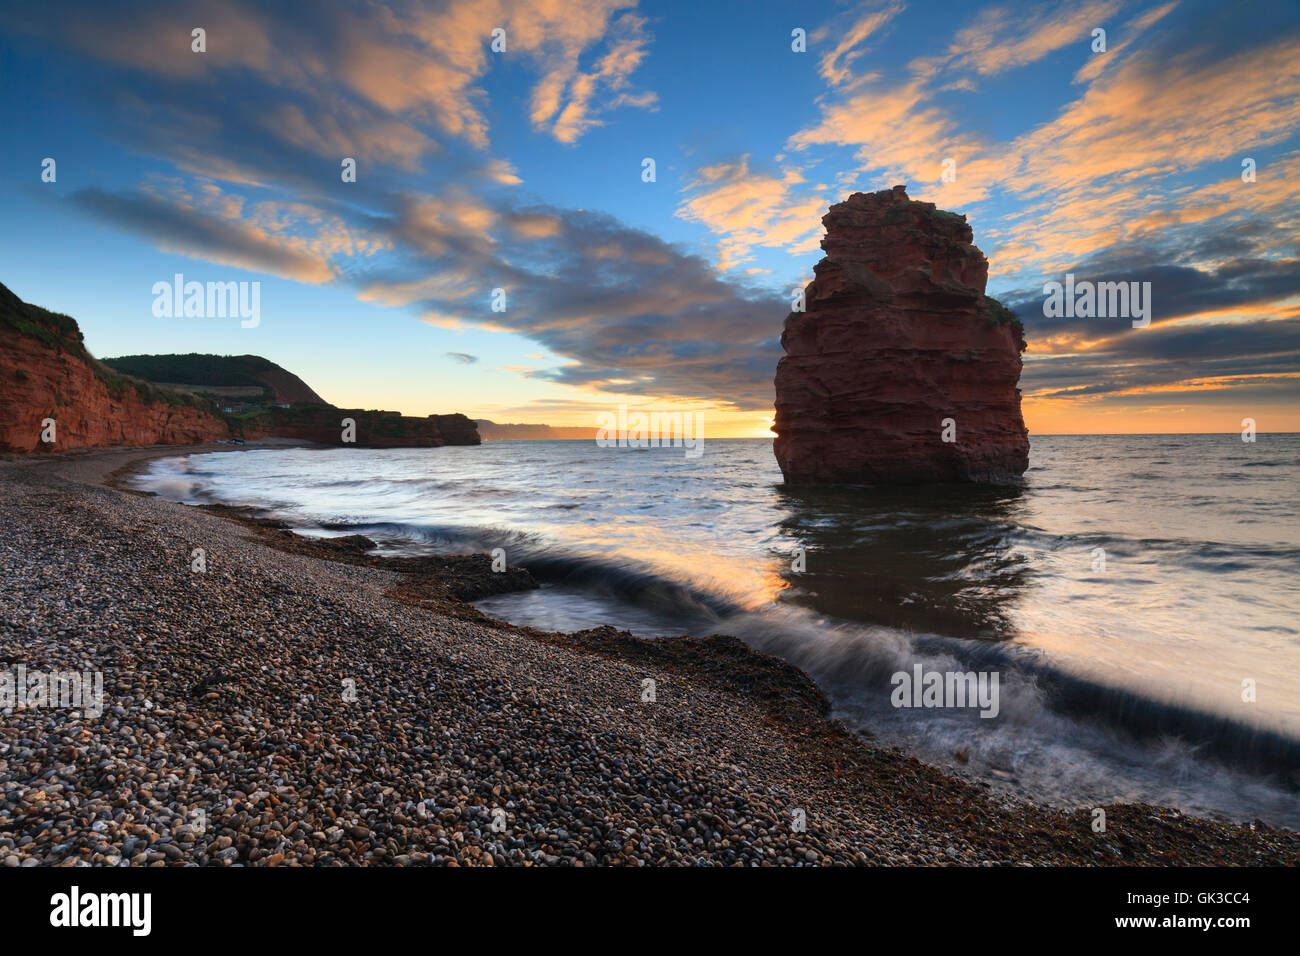 A sandstone sea stack at Ladram Bay, near Sidmouth in south east Devon. - Stock Image